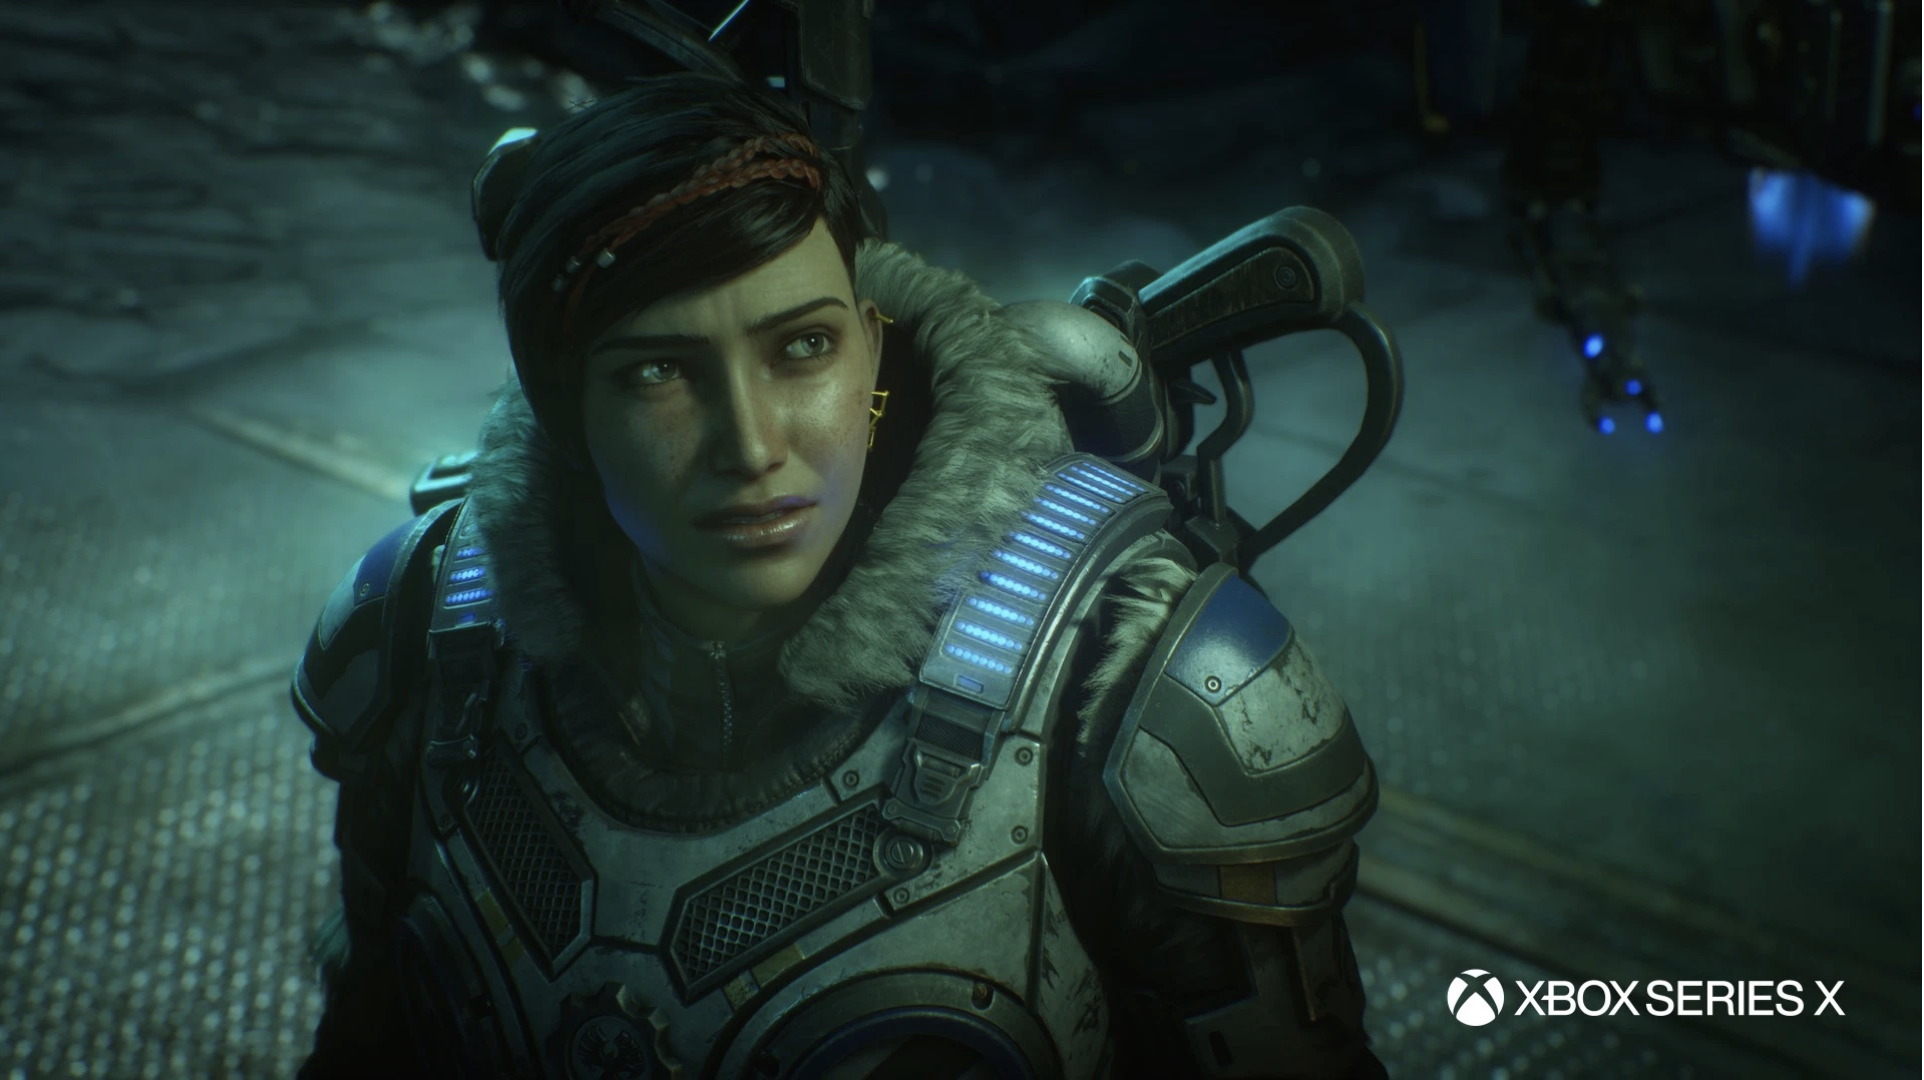 Gears 5 - Evaluation: Xbox Sequence X - the way forward for gaming that does not overlook its previous